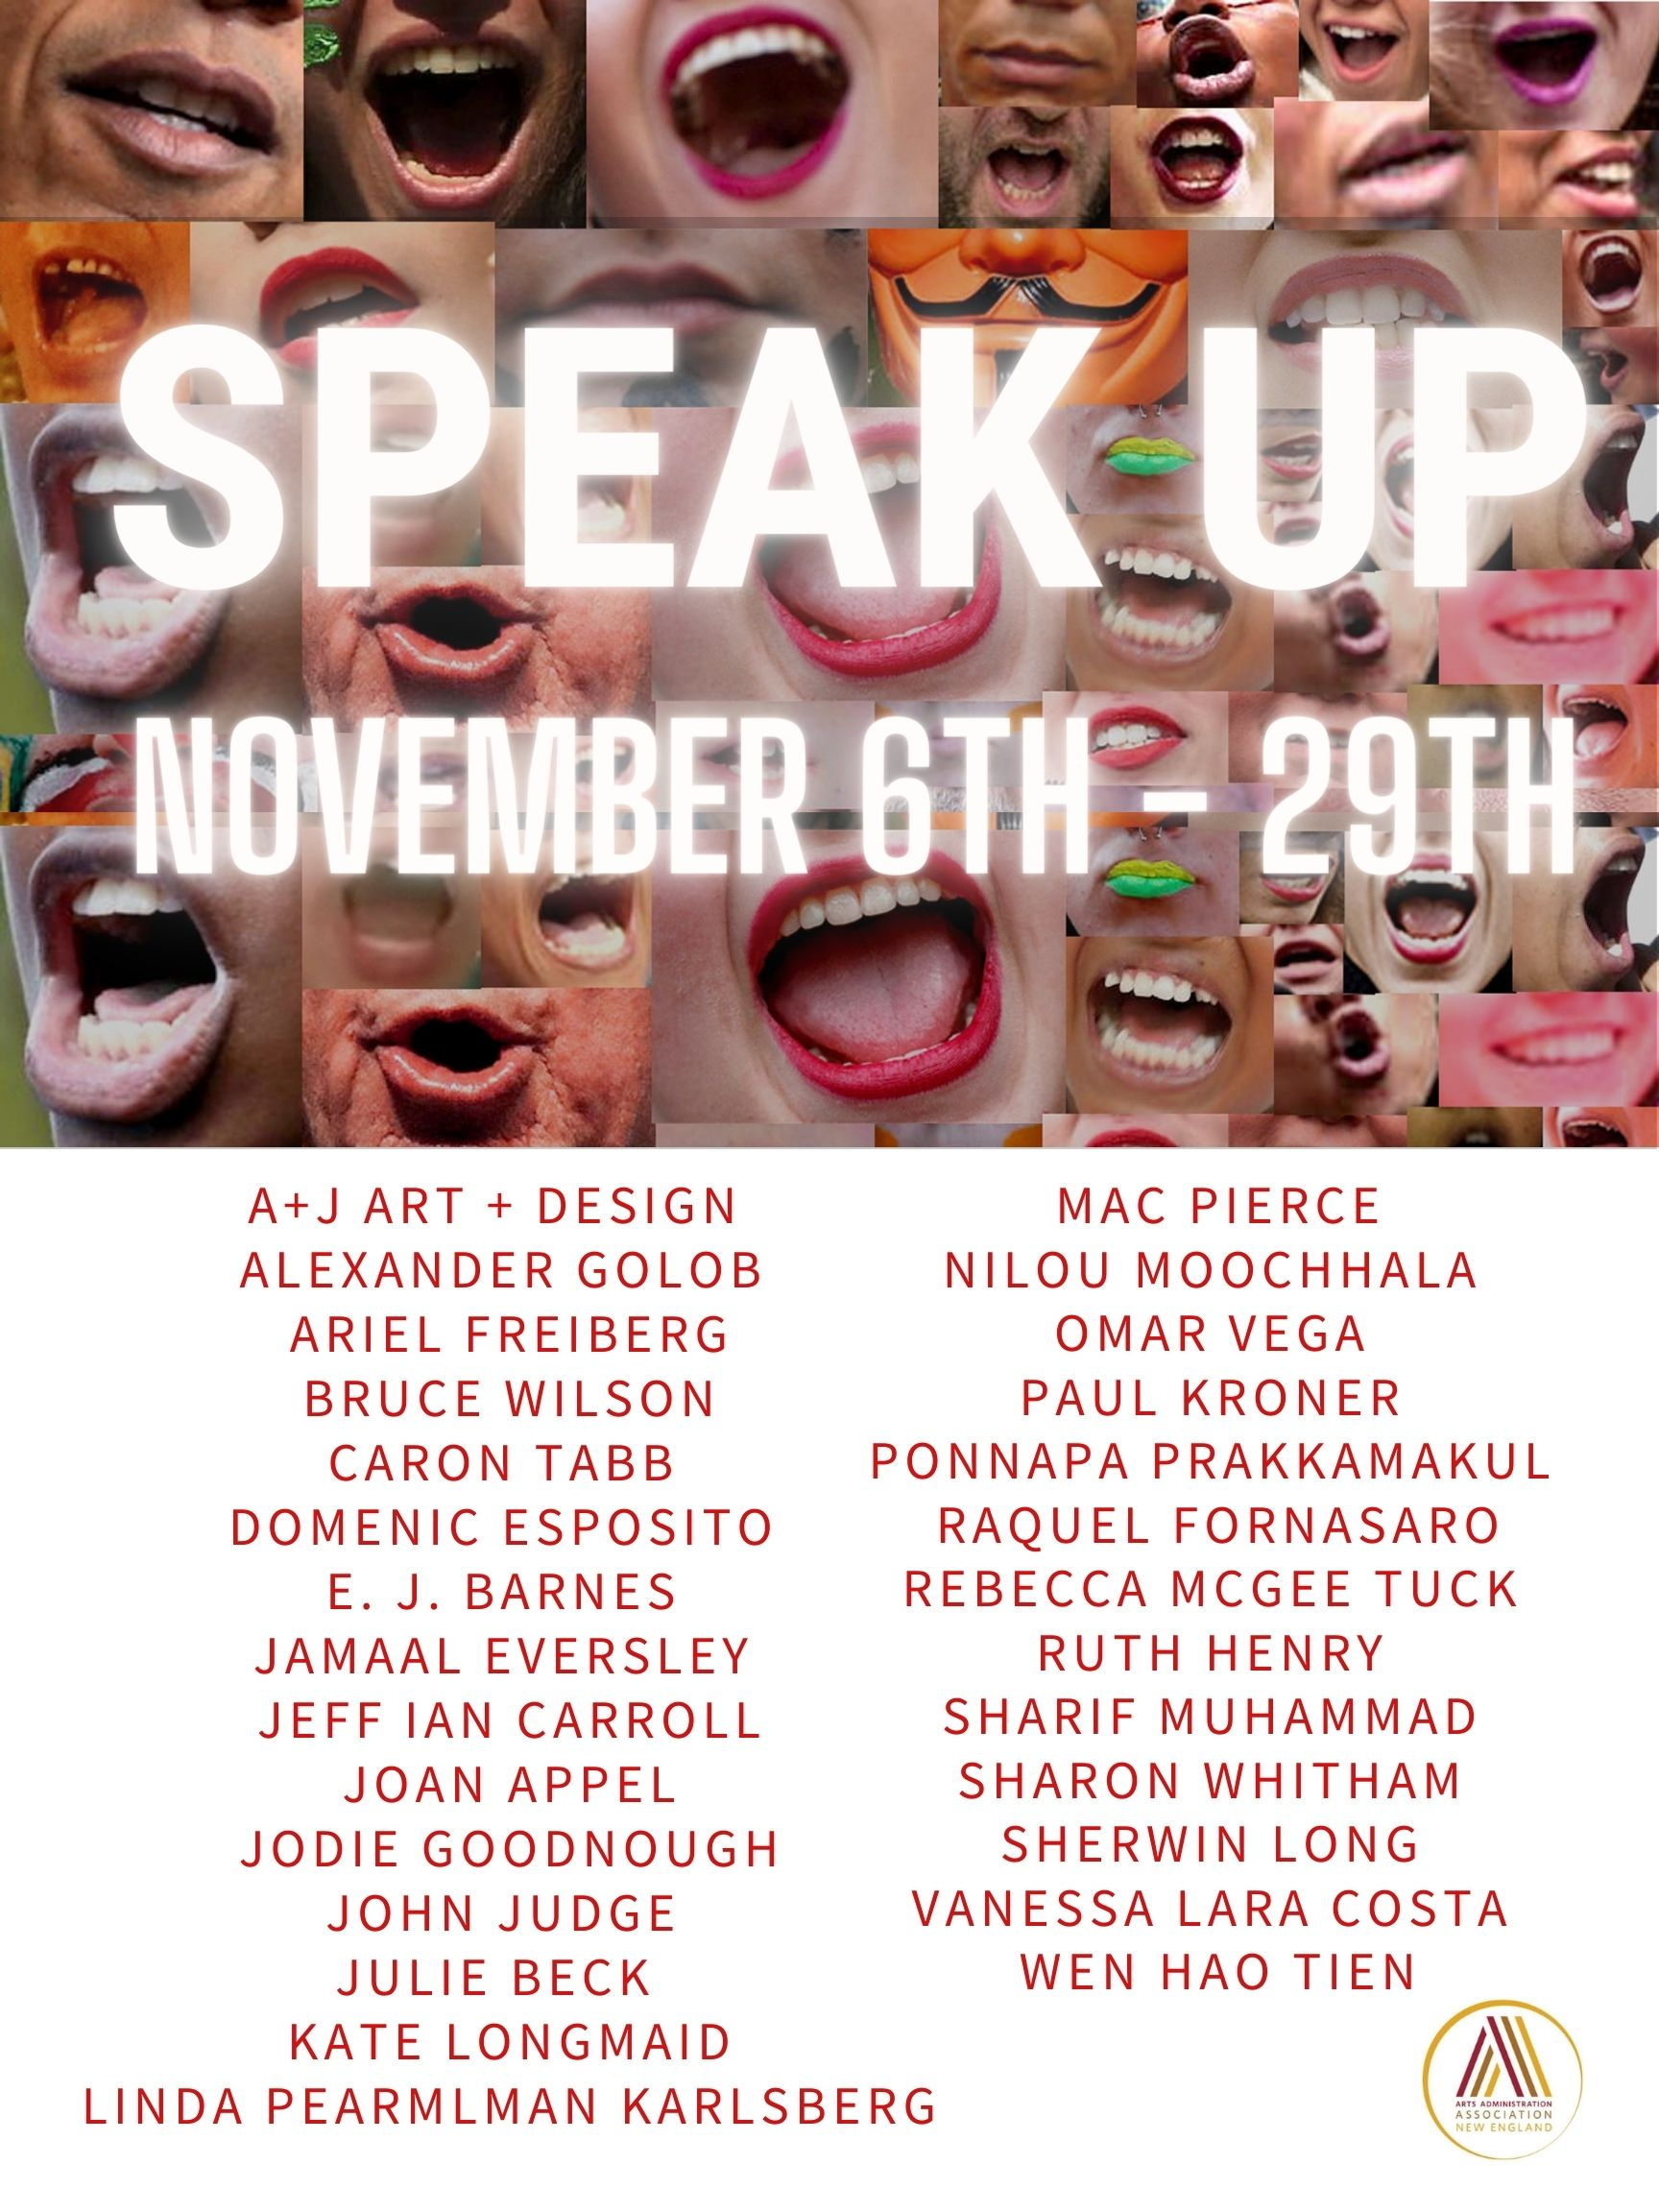 speak-up-website-complete